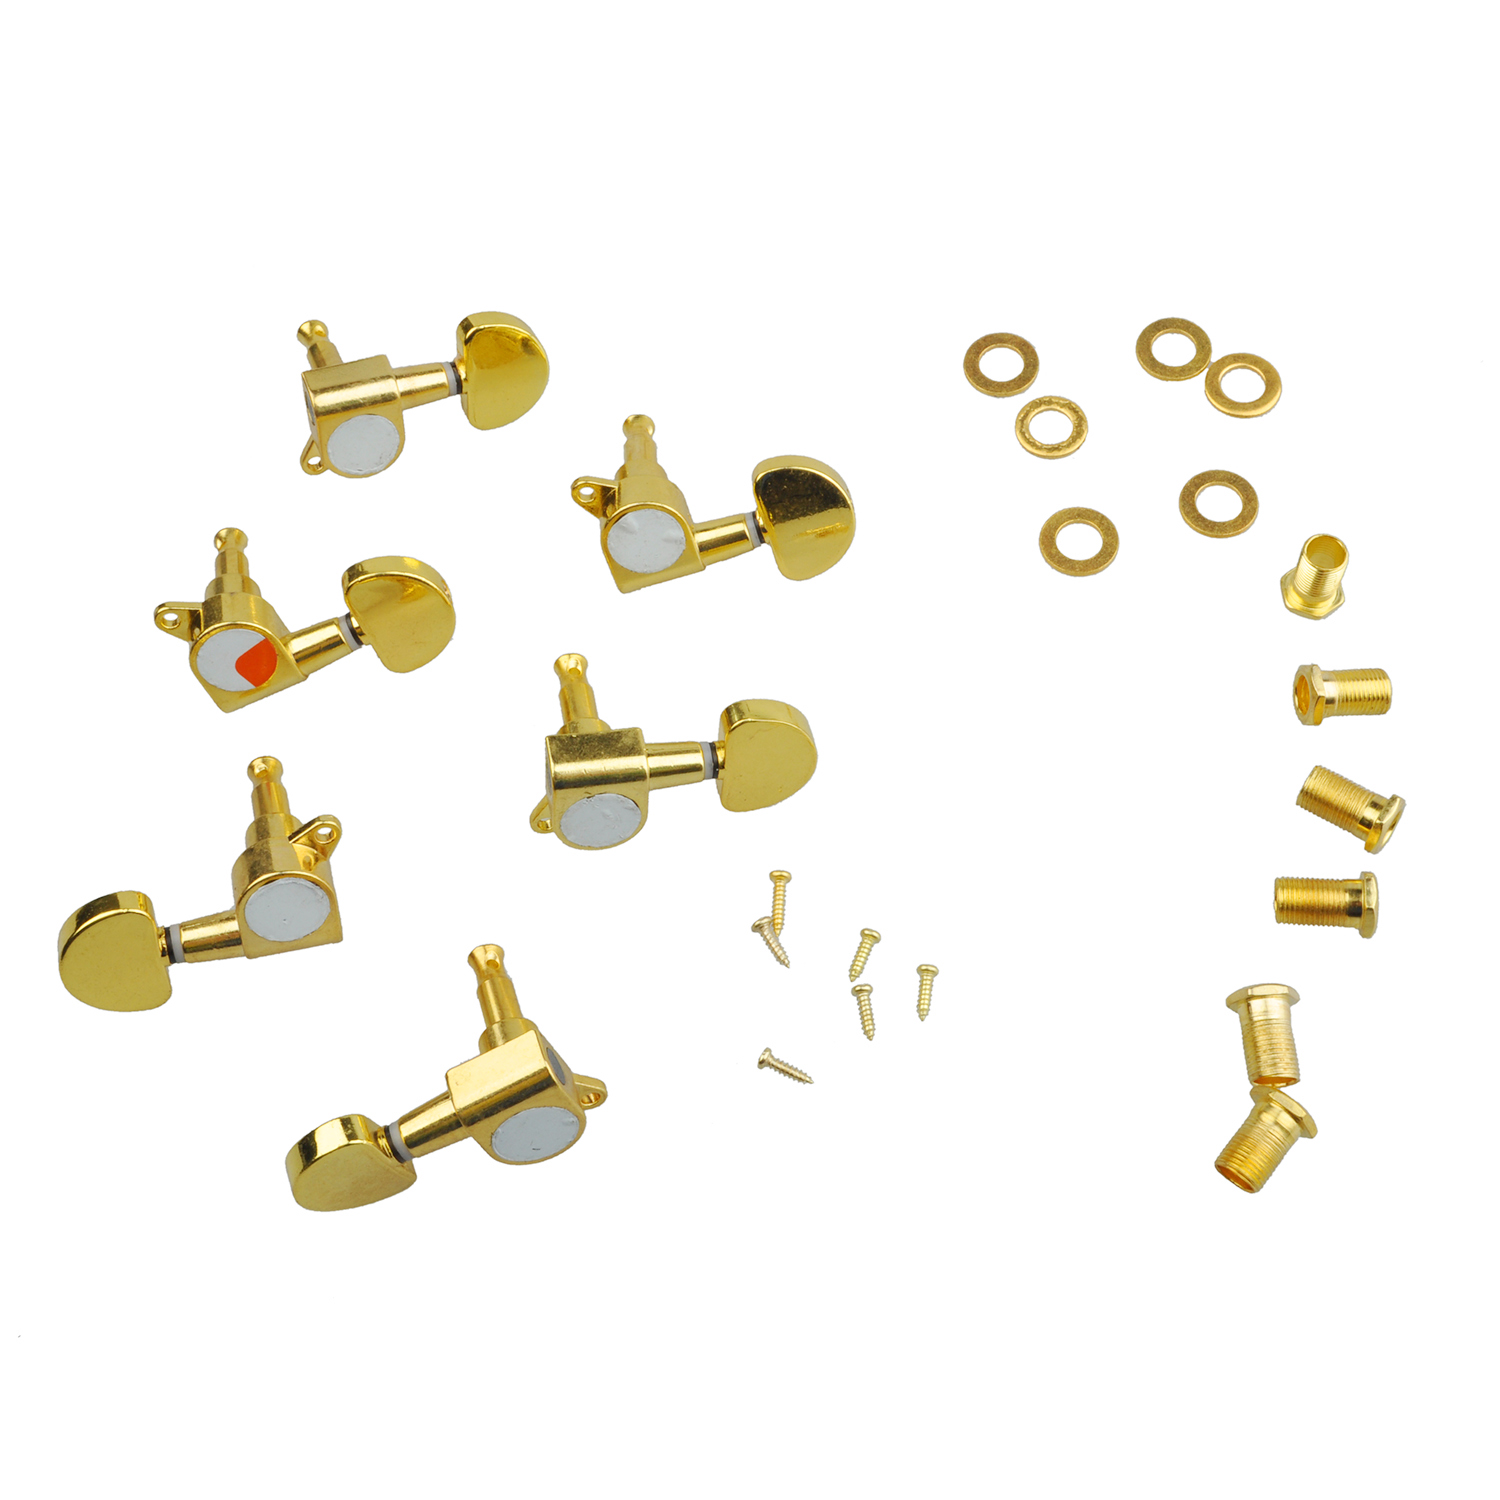 3 Pairs Sealed Guitar String Tuning Pegs Tuners Machine Heads 3L + 3R Gold / Steel and Zinc Alloy Gold Guitar Heads